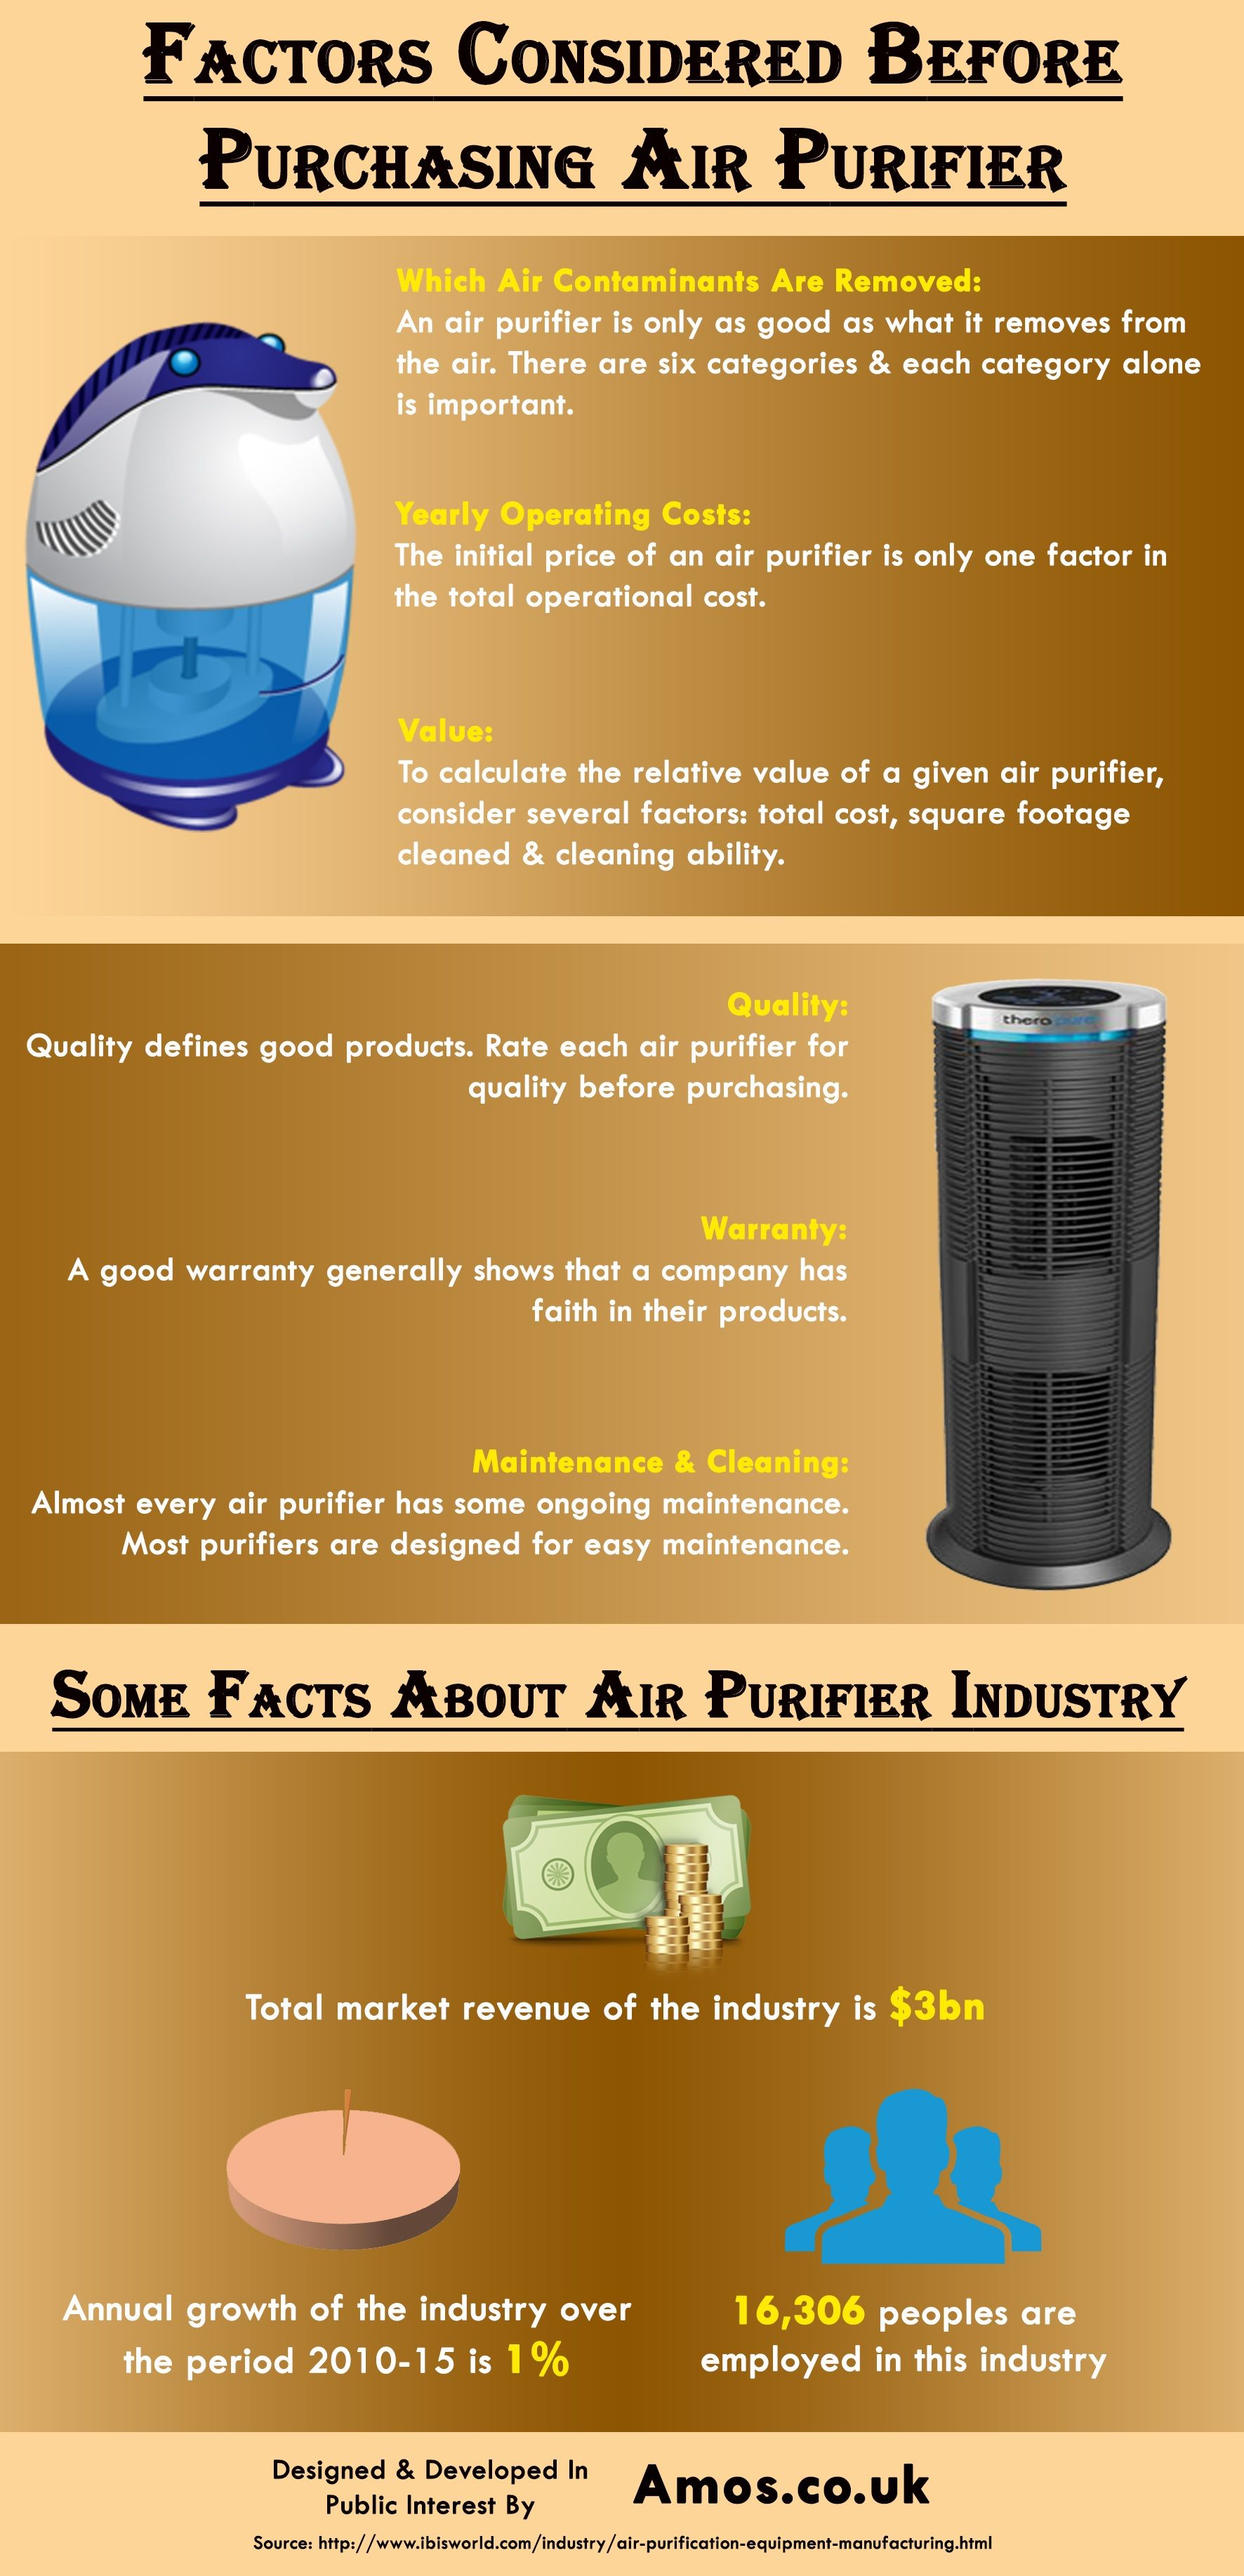 This infographic provide information on Factors Considered